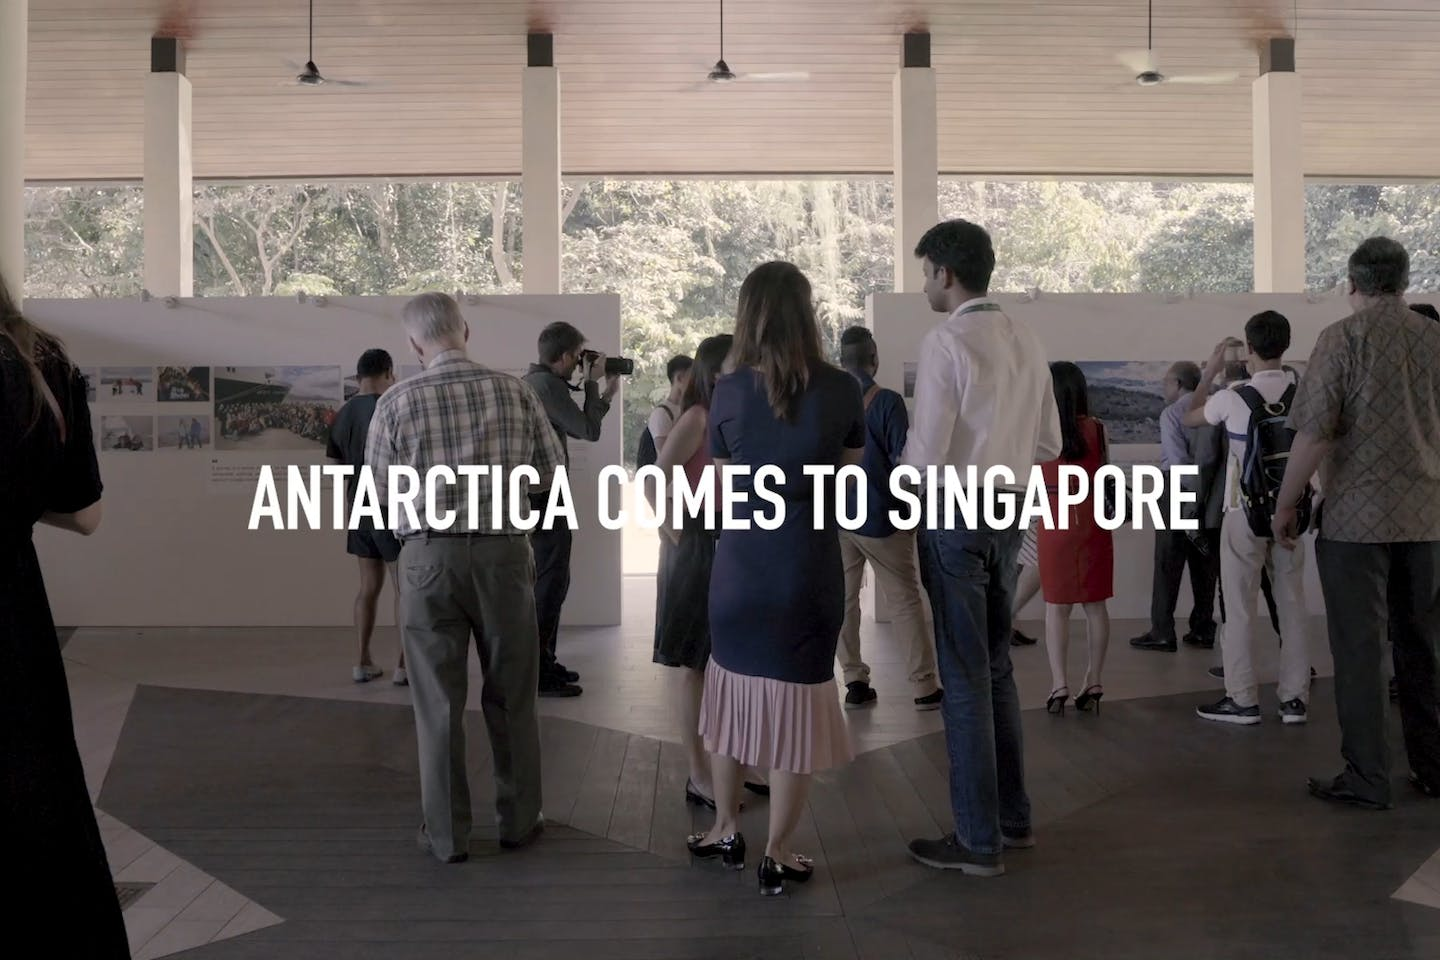 Antarctica comes to Singapore at the Changing Course exhibition. Image: Eco-Business